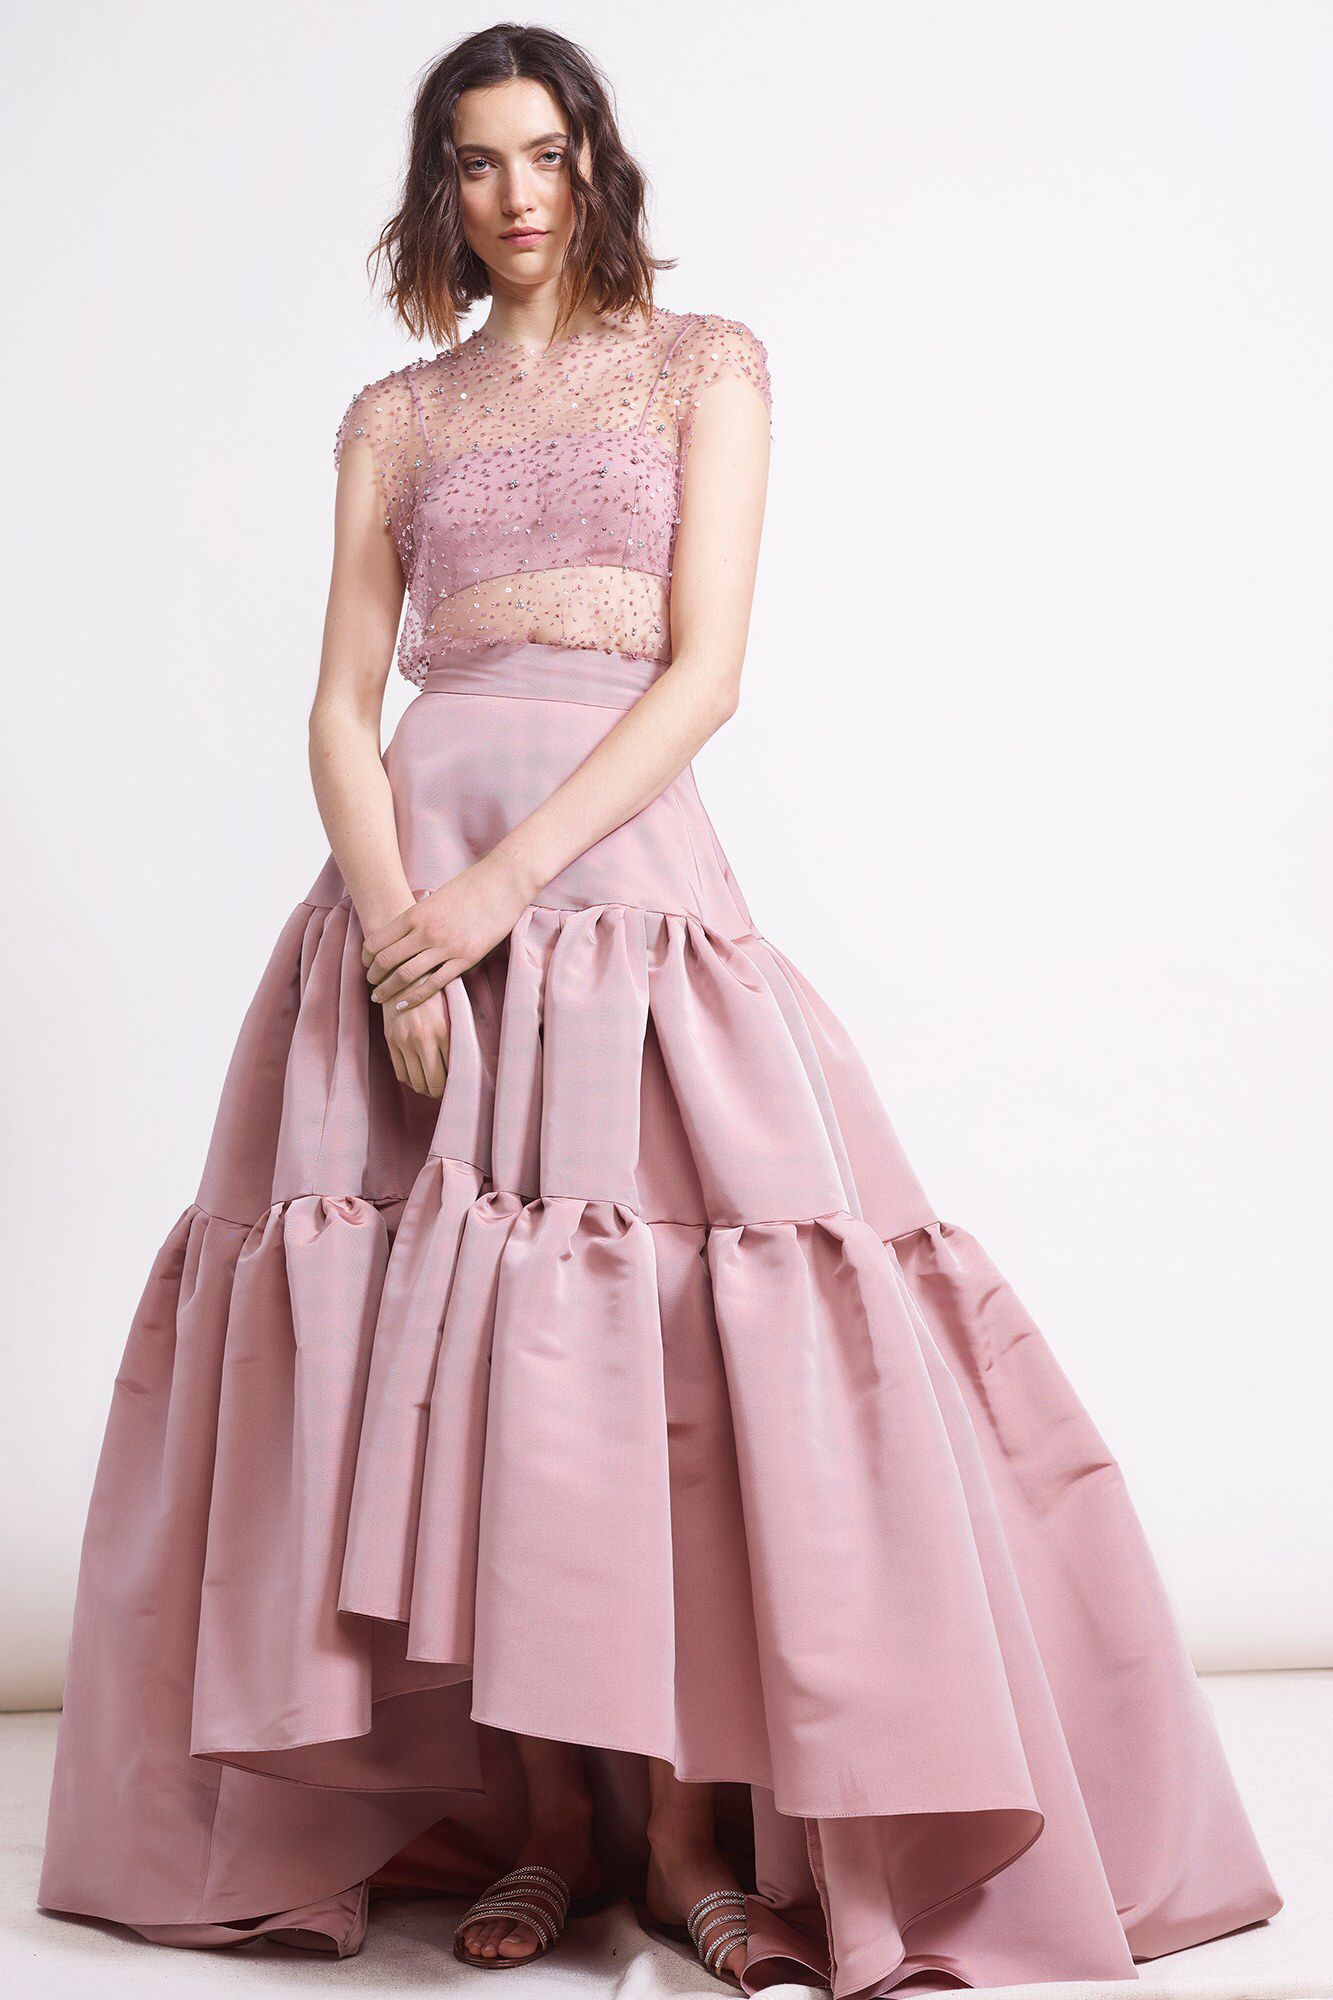 Reem Acra Pre-Fall 2018 Fashion Show Collection | Style | Pinterest ...